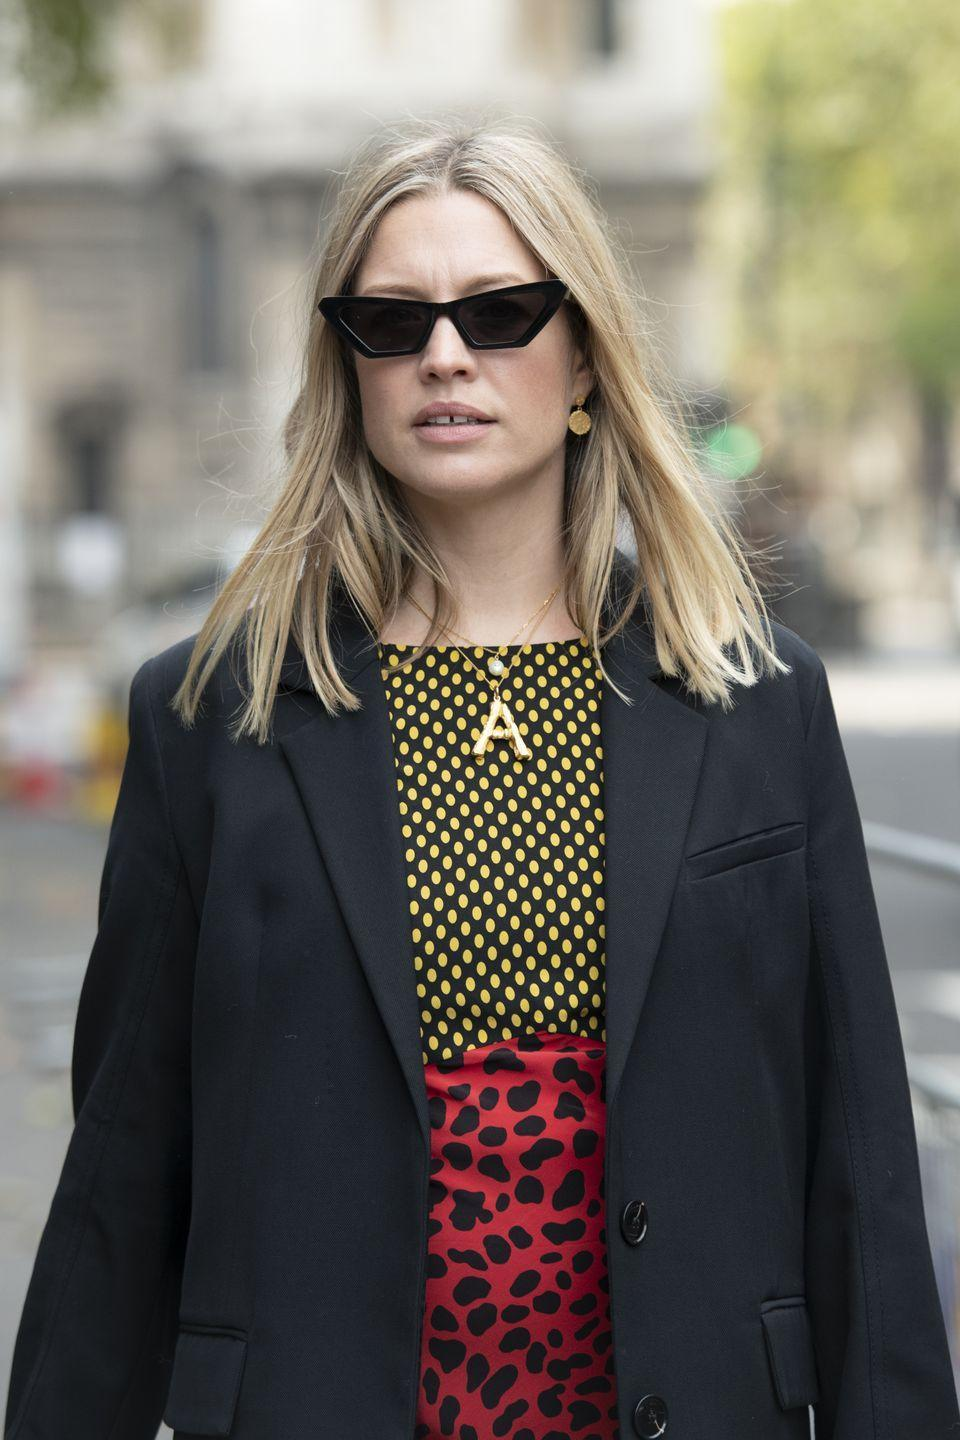 <p>Anyone lucky enough to track down one of Céline's bamboo-style alphabet pendant better hold onto them, as they command an impressively high figure on resale sites.</p><p>The high street is still awash with copycats.</p>